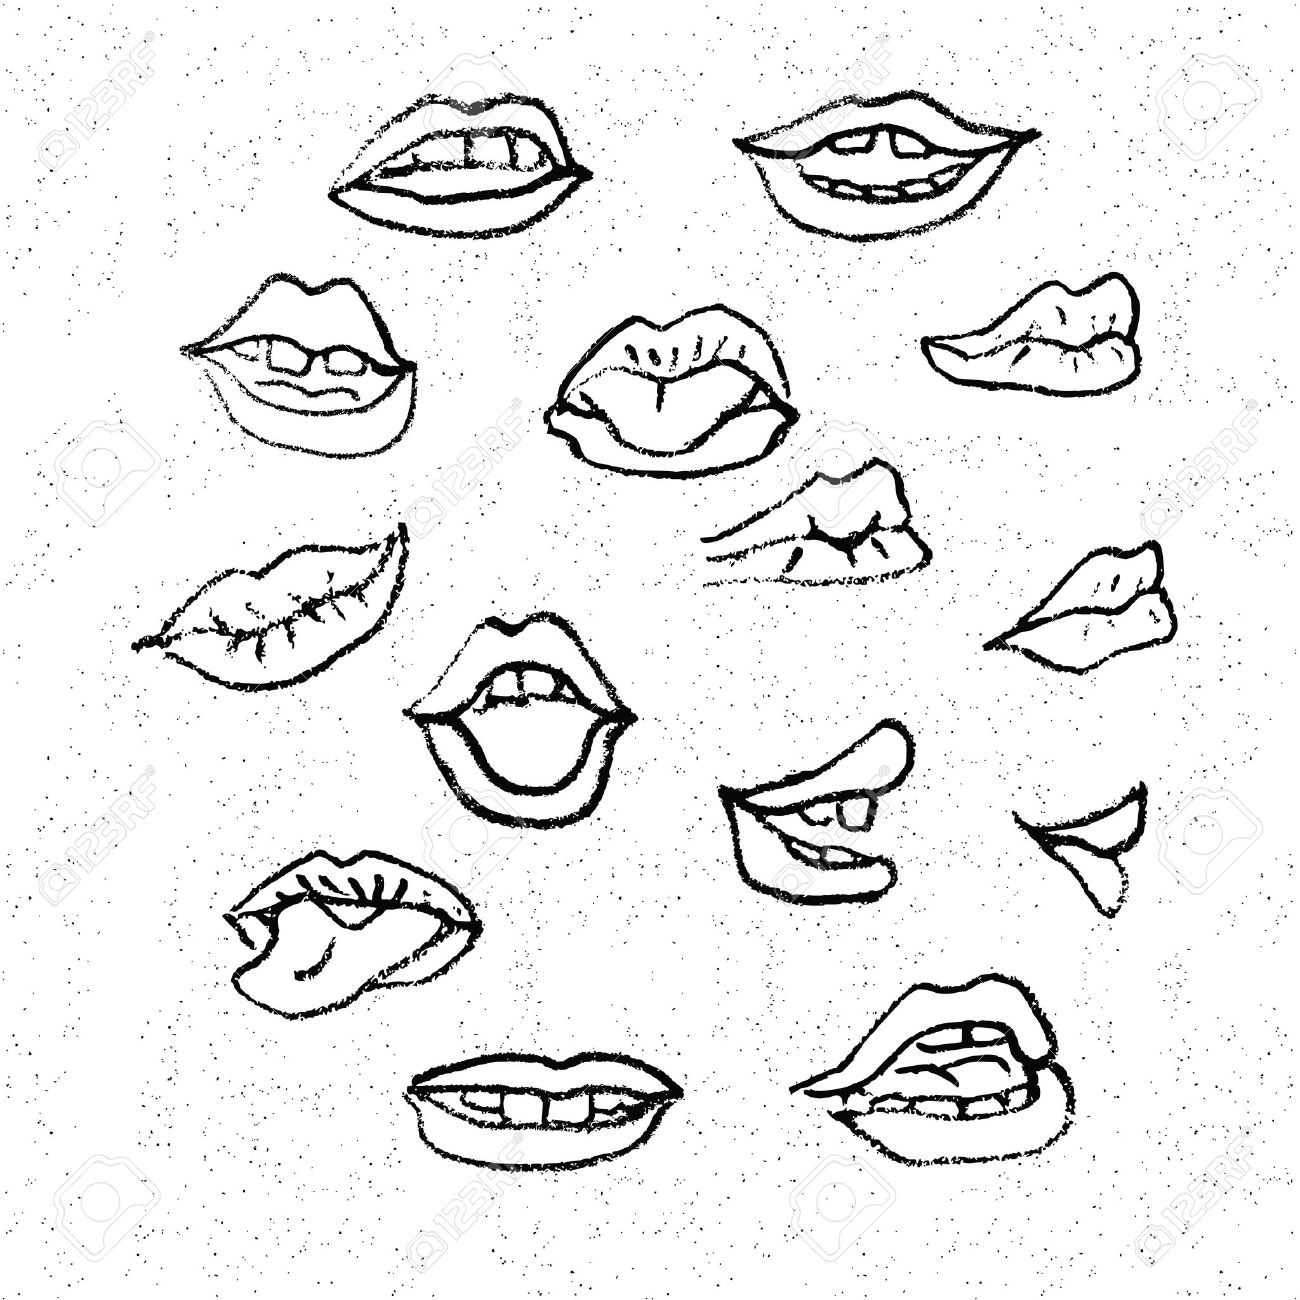 1300x1300 Lips Set, Attractive Human Mouths. Cartoon Mouth Icons. Every